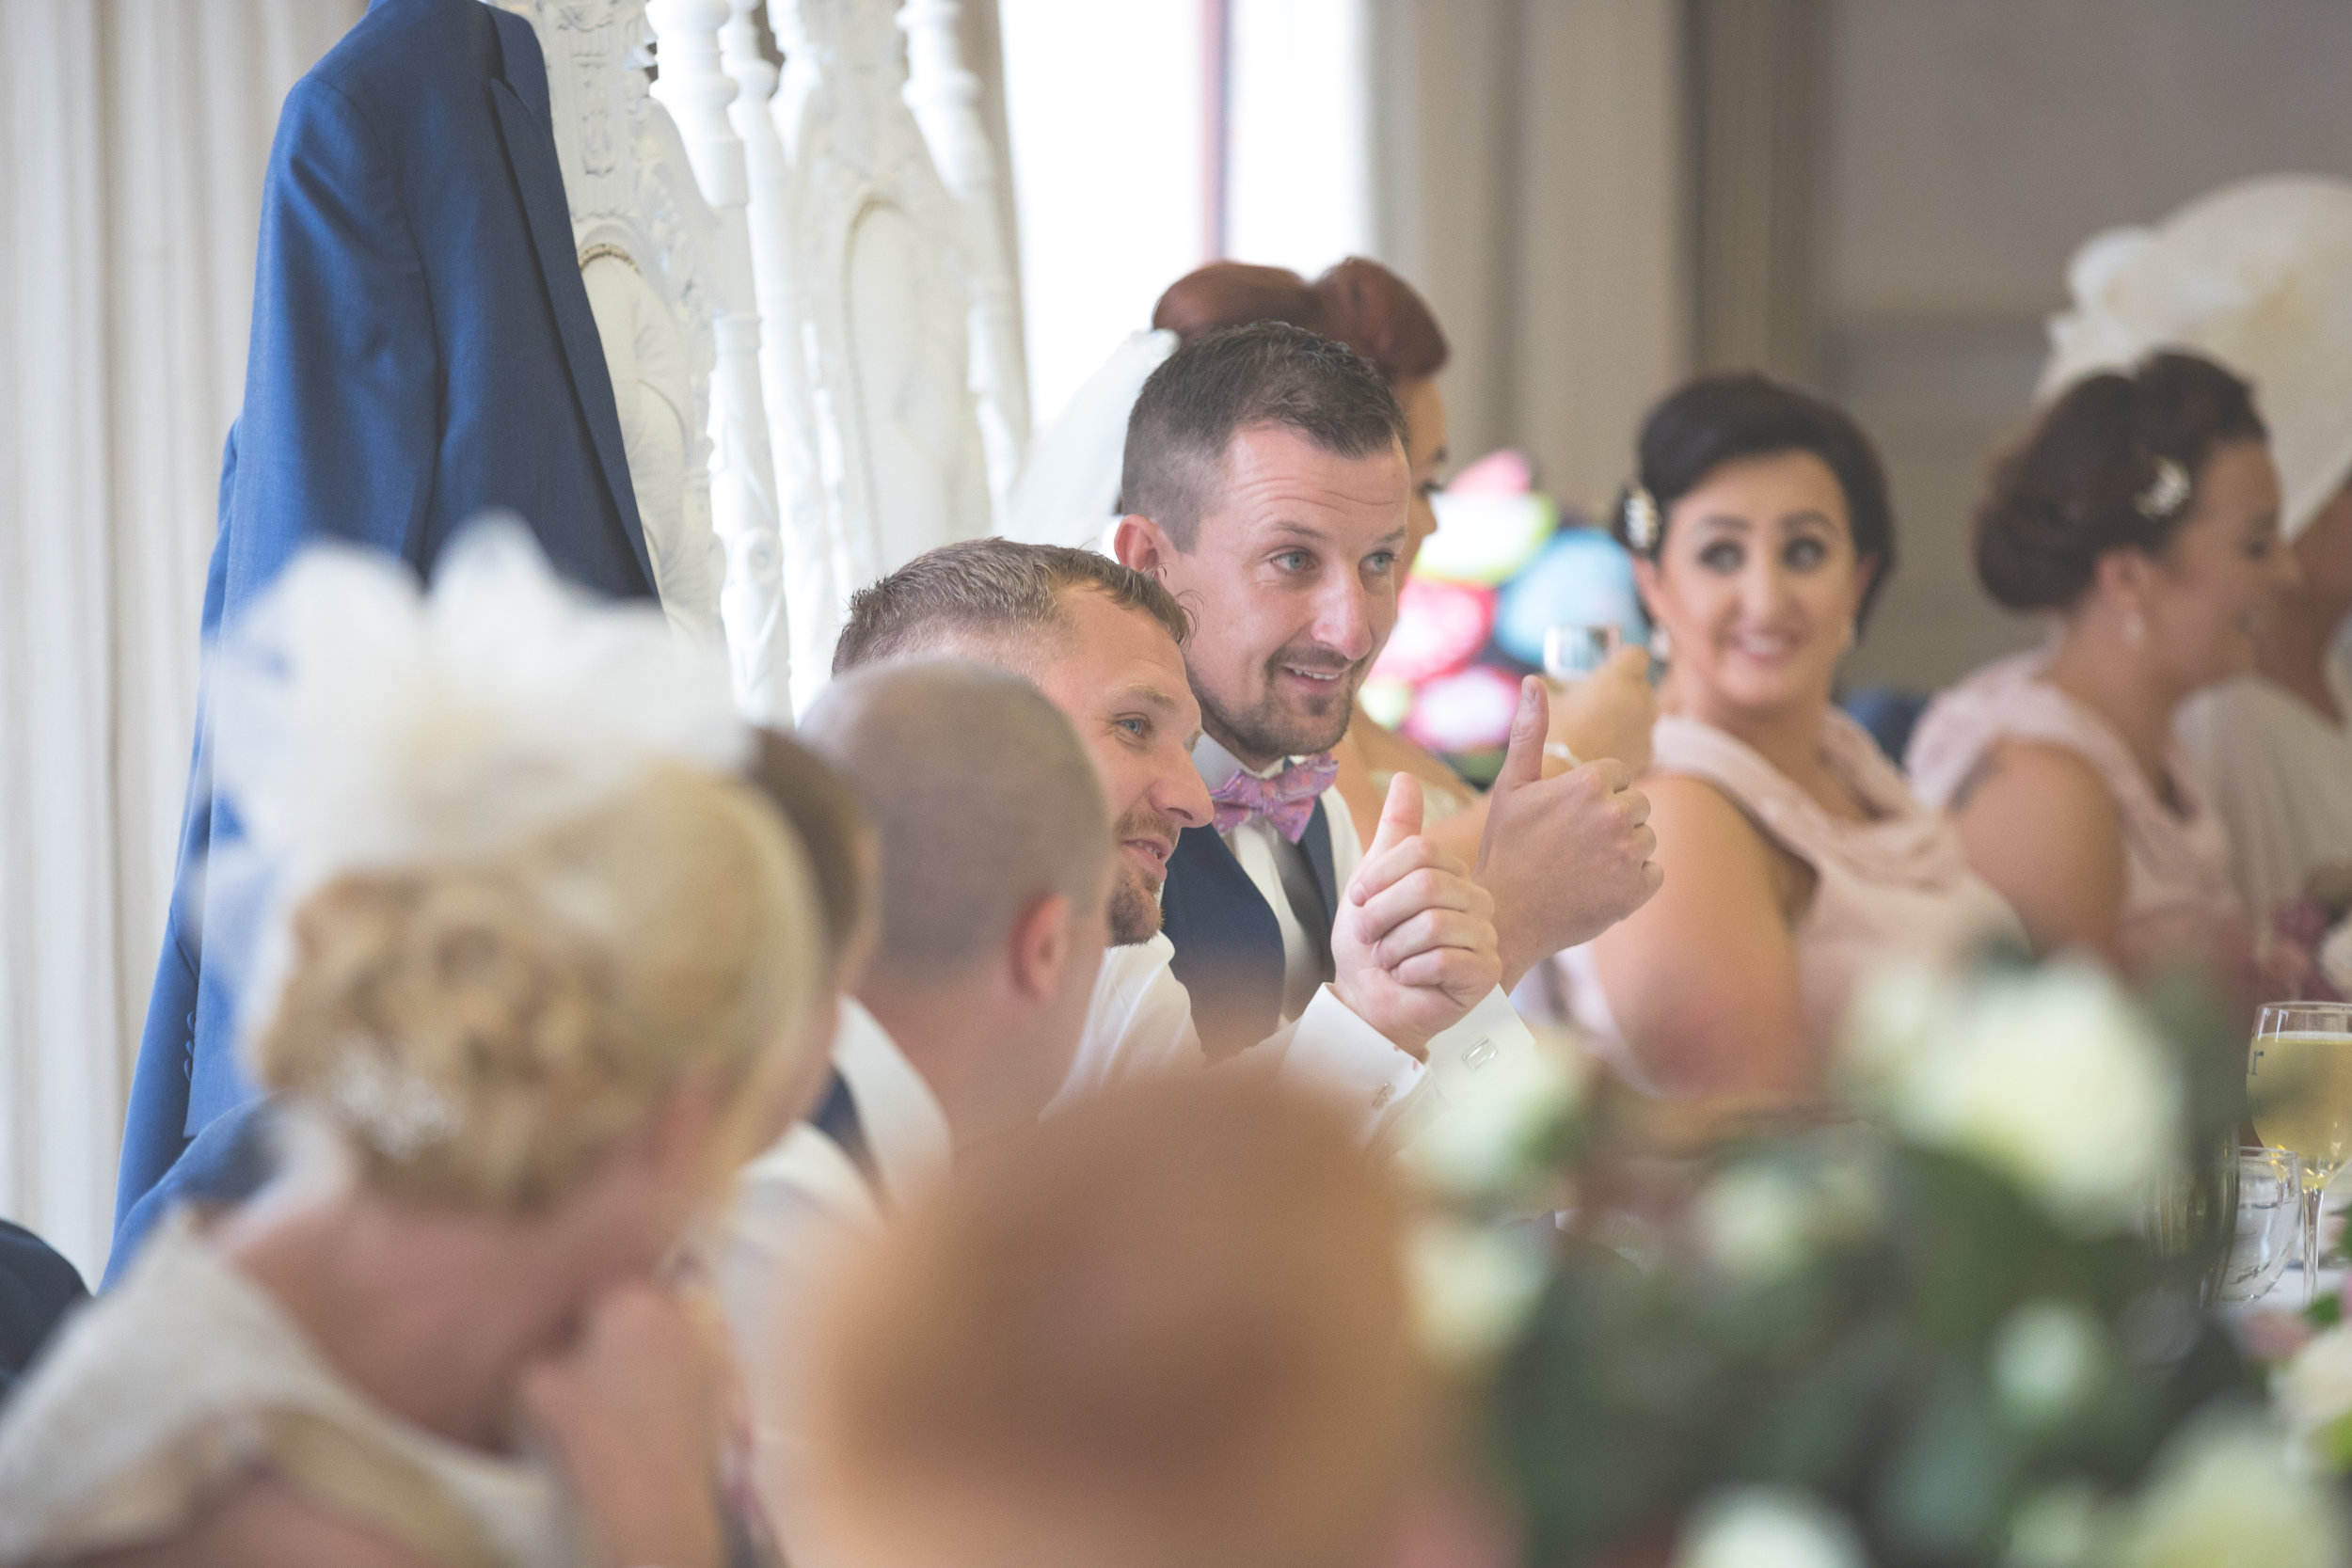 Antoinette & Stephen - Speeches | Brian McEwan Photography | Wedding Photographer Northern Ireland 17.jpg